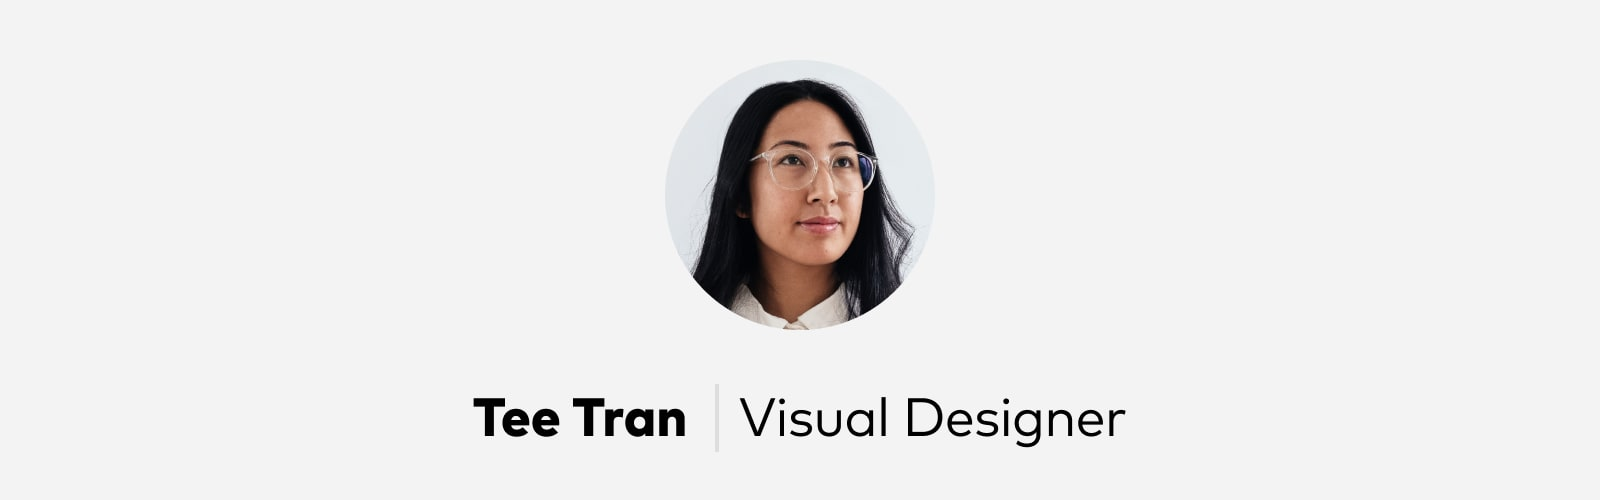 Tree Tran Visual Designer at Pitch